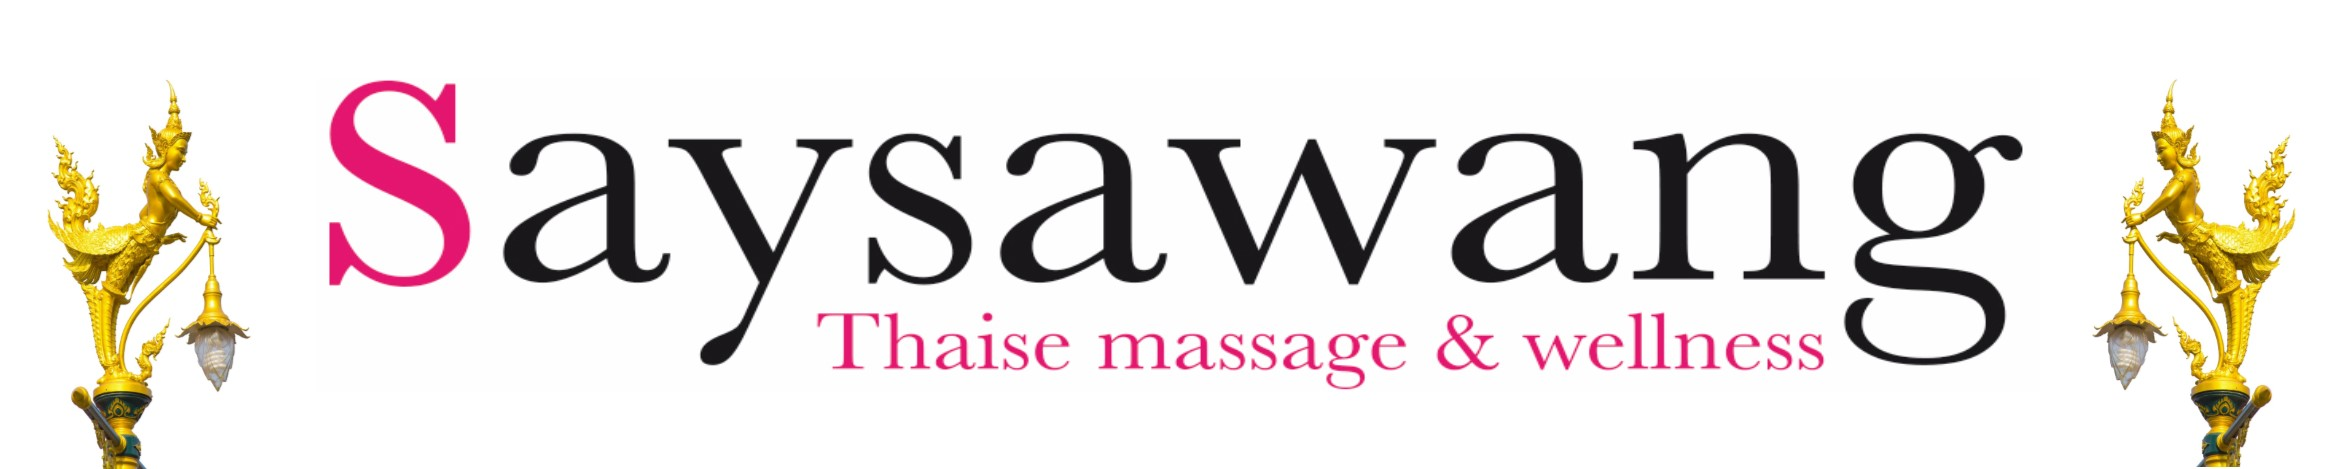 Saysawang Thaise Massage & Wellness